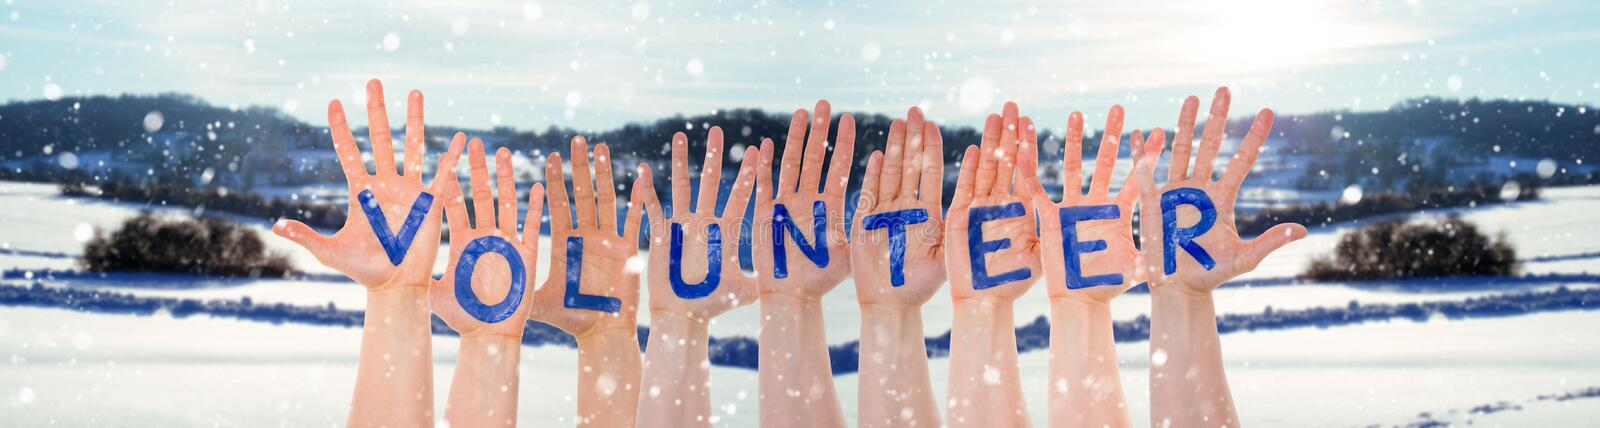 Many Hands Building Word Volunteer, Winter Scenery As Background. Many Hands Building English Word Volunteer. Beautiful Snowy Winter Landscape With Snow As royalty free stock photo